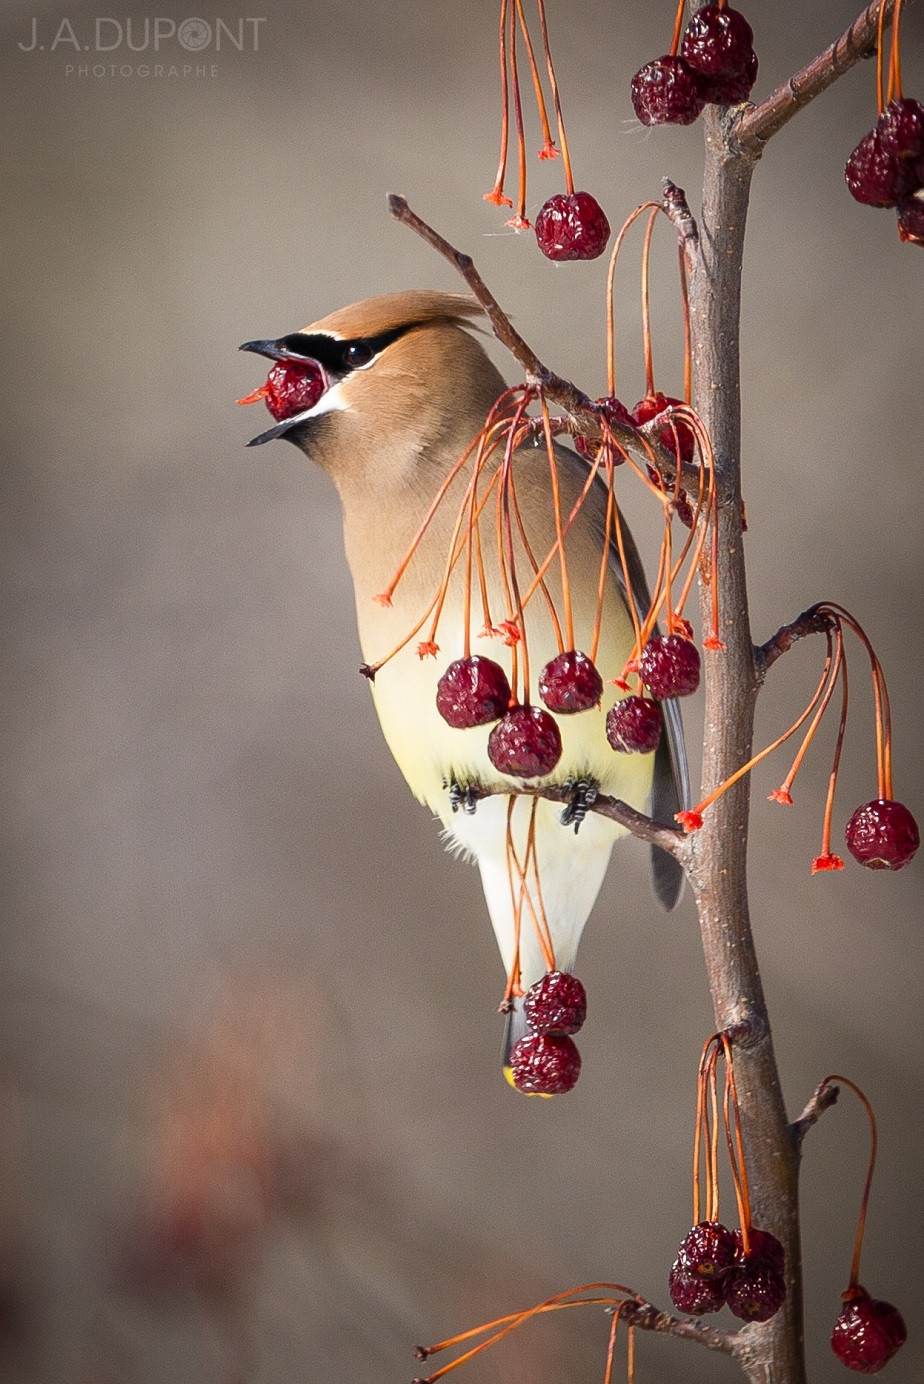 Bird eating a fruit, Quebec, Canada, by wildlife photographer Jacques-André Dupont